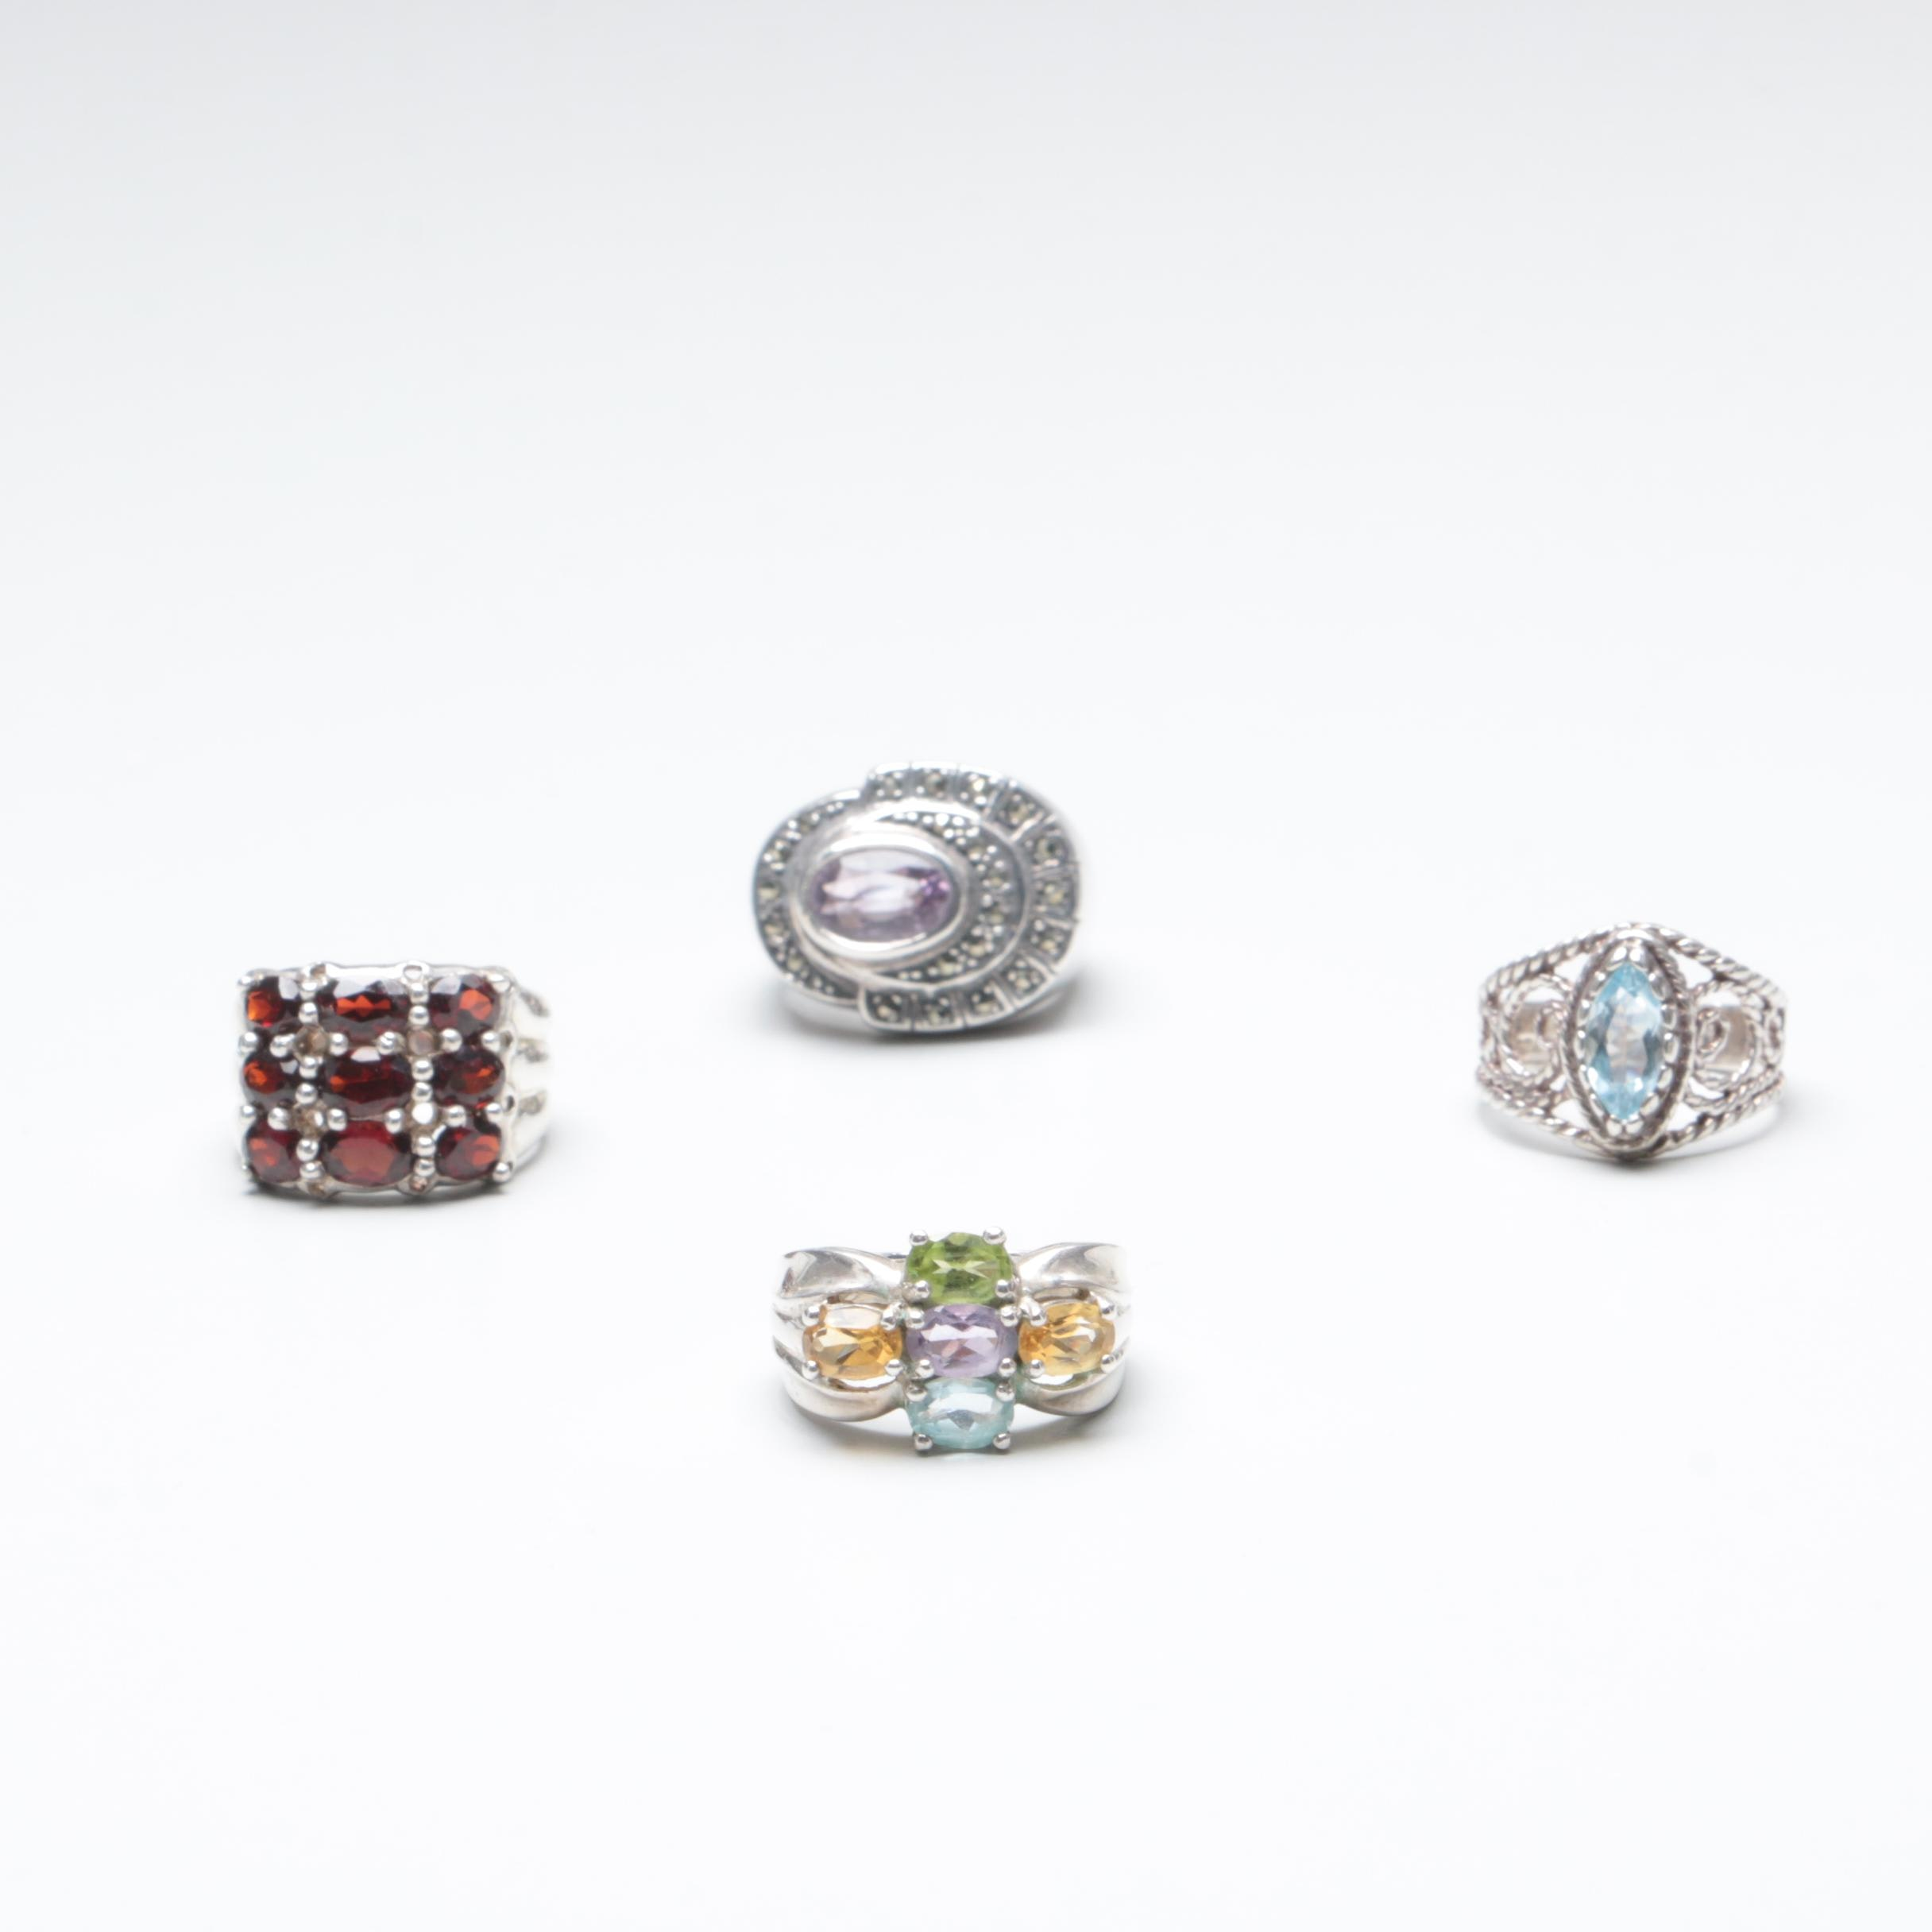 Sterling Silver Ring Selection with Garnet, Blue Topaz, and Peridot